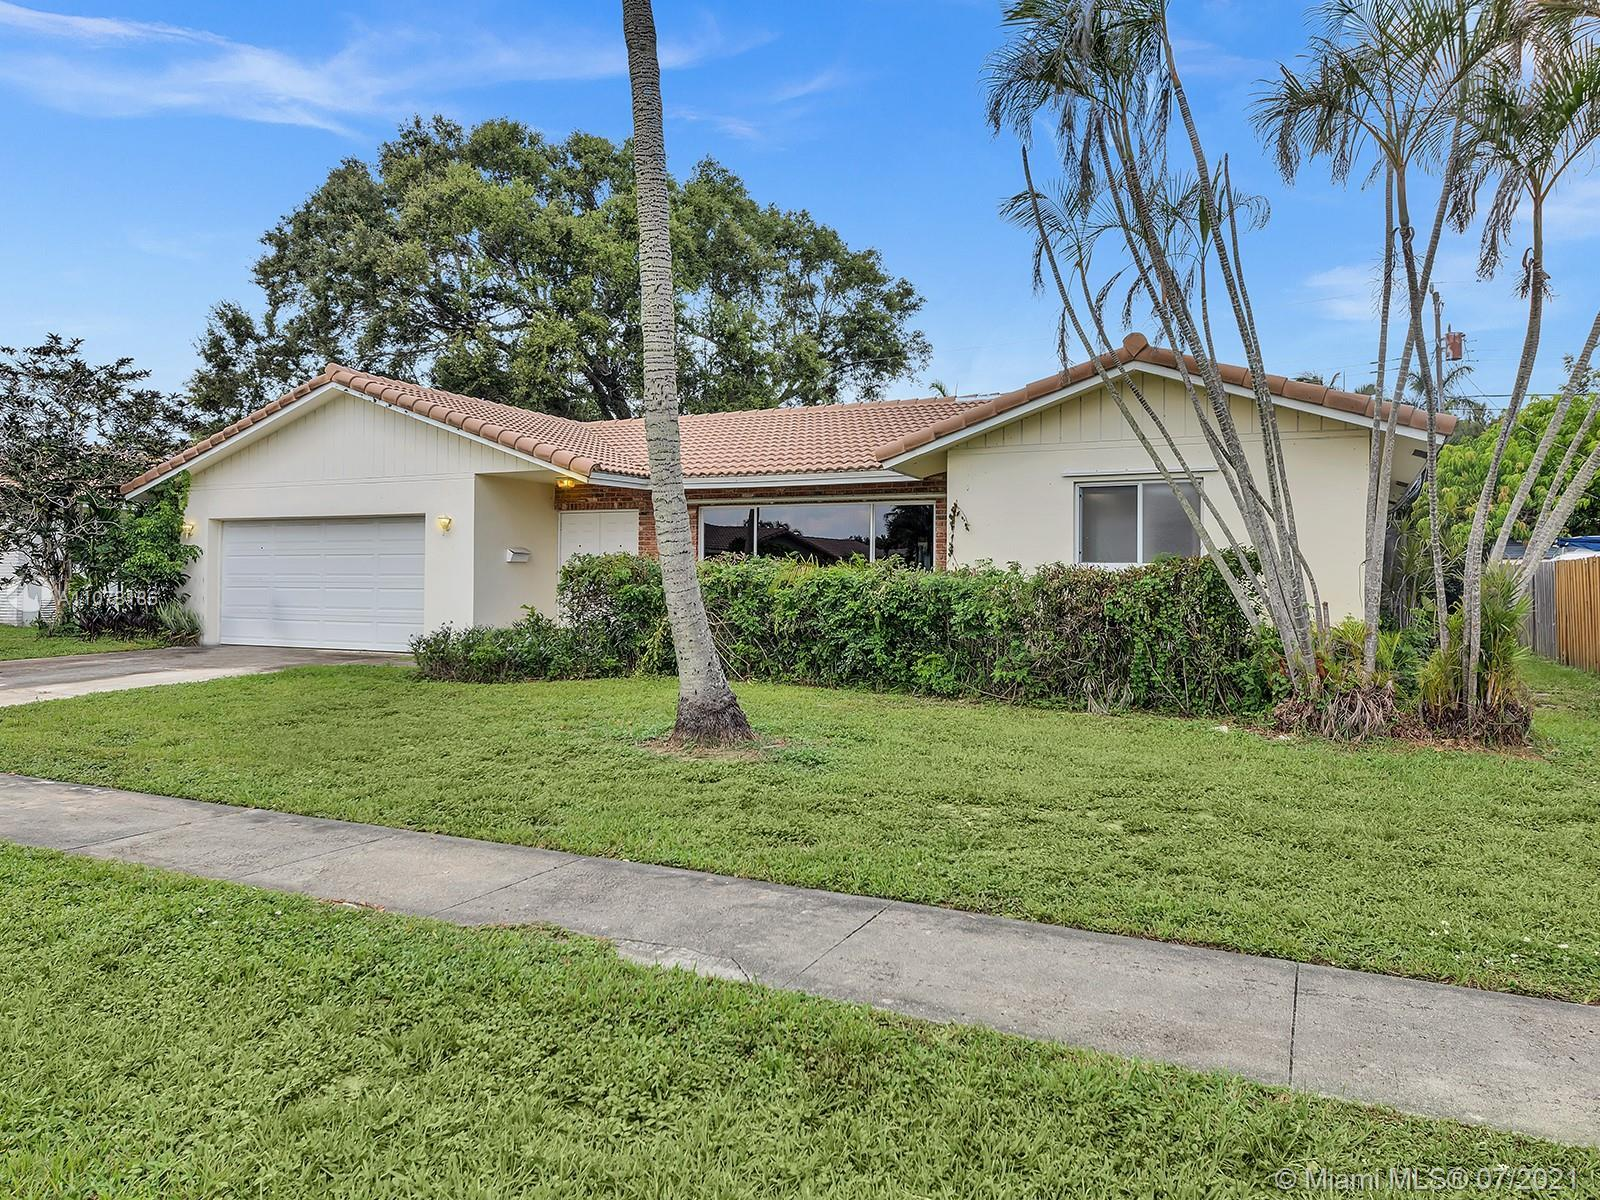 Fantastic opportunity to purchase in this coveted area! Spacious house with a double garage and a po